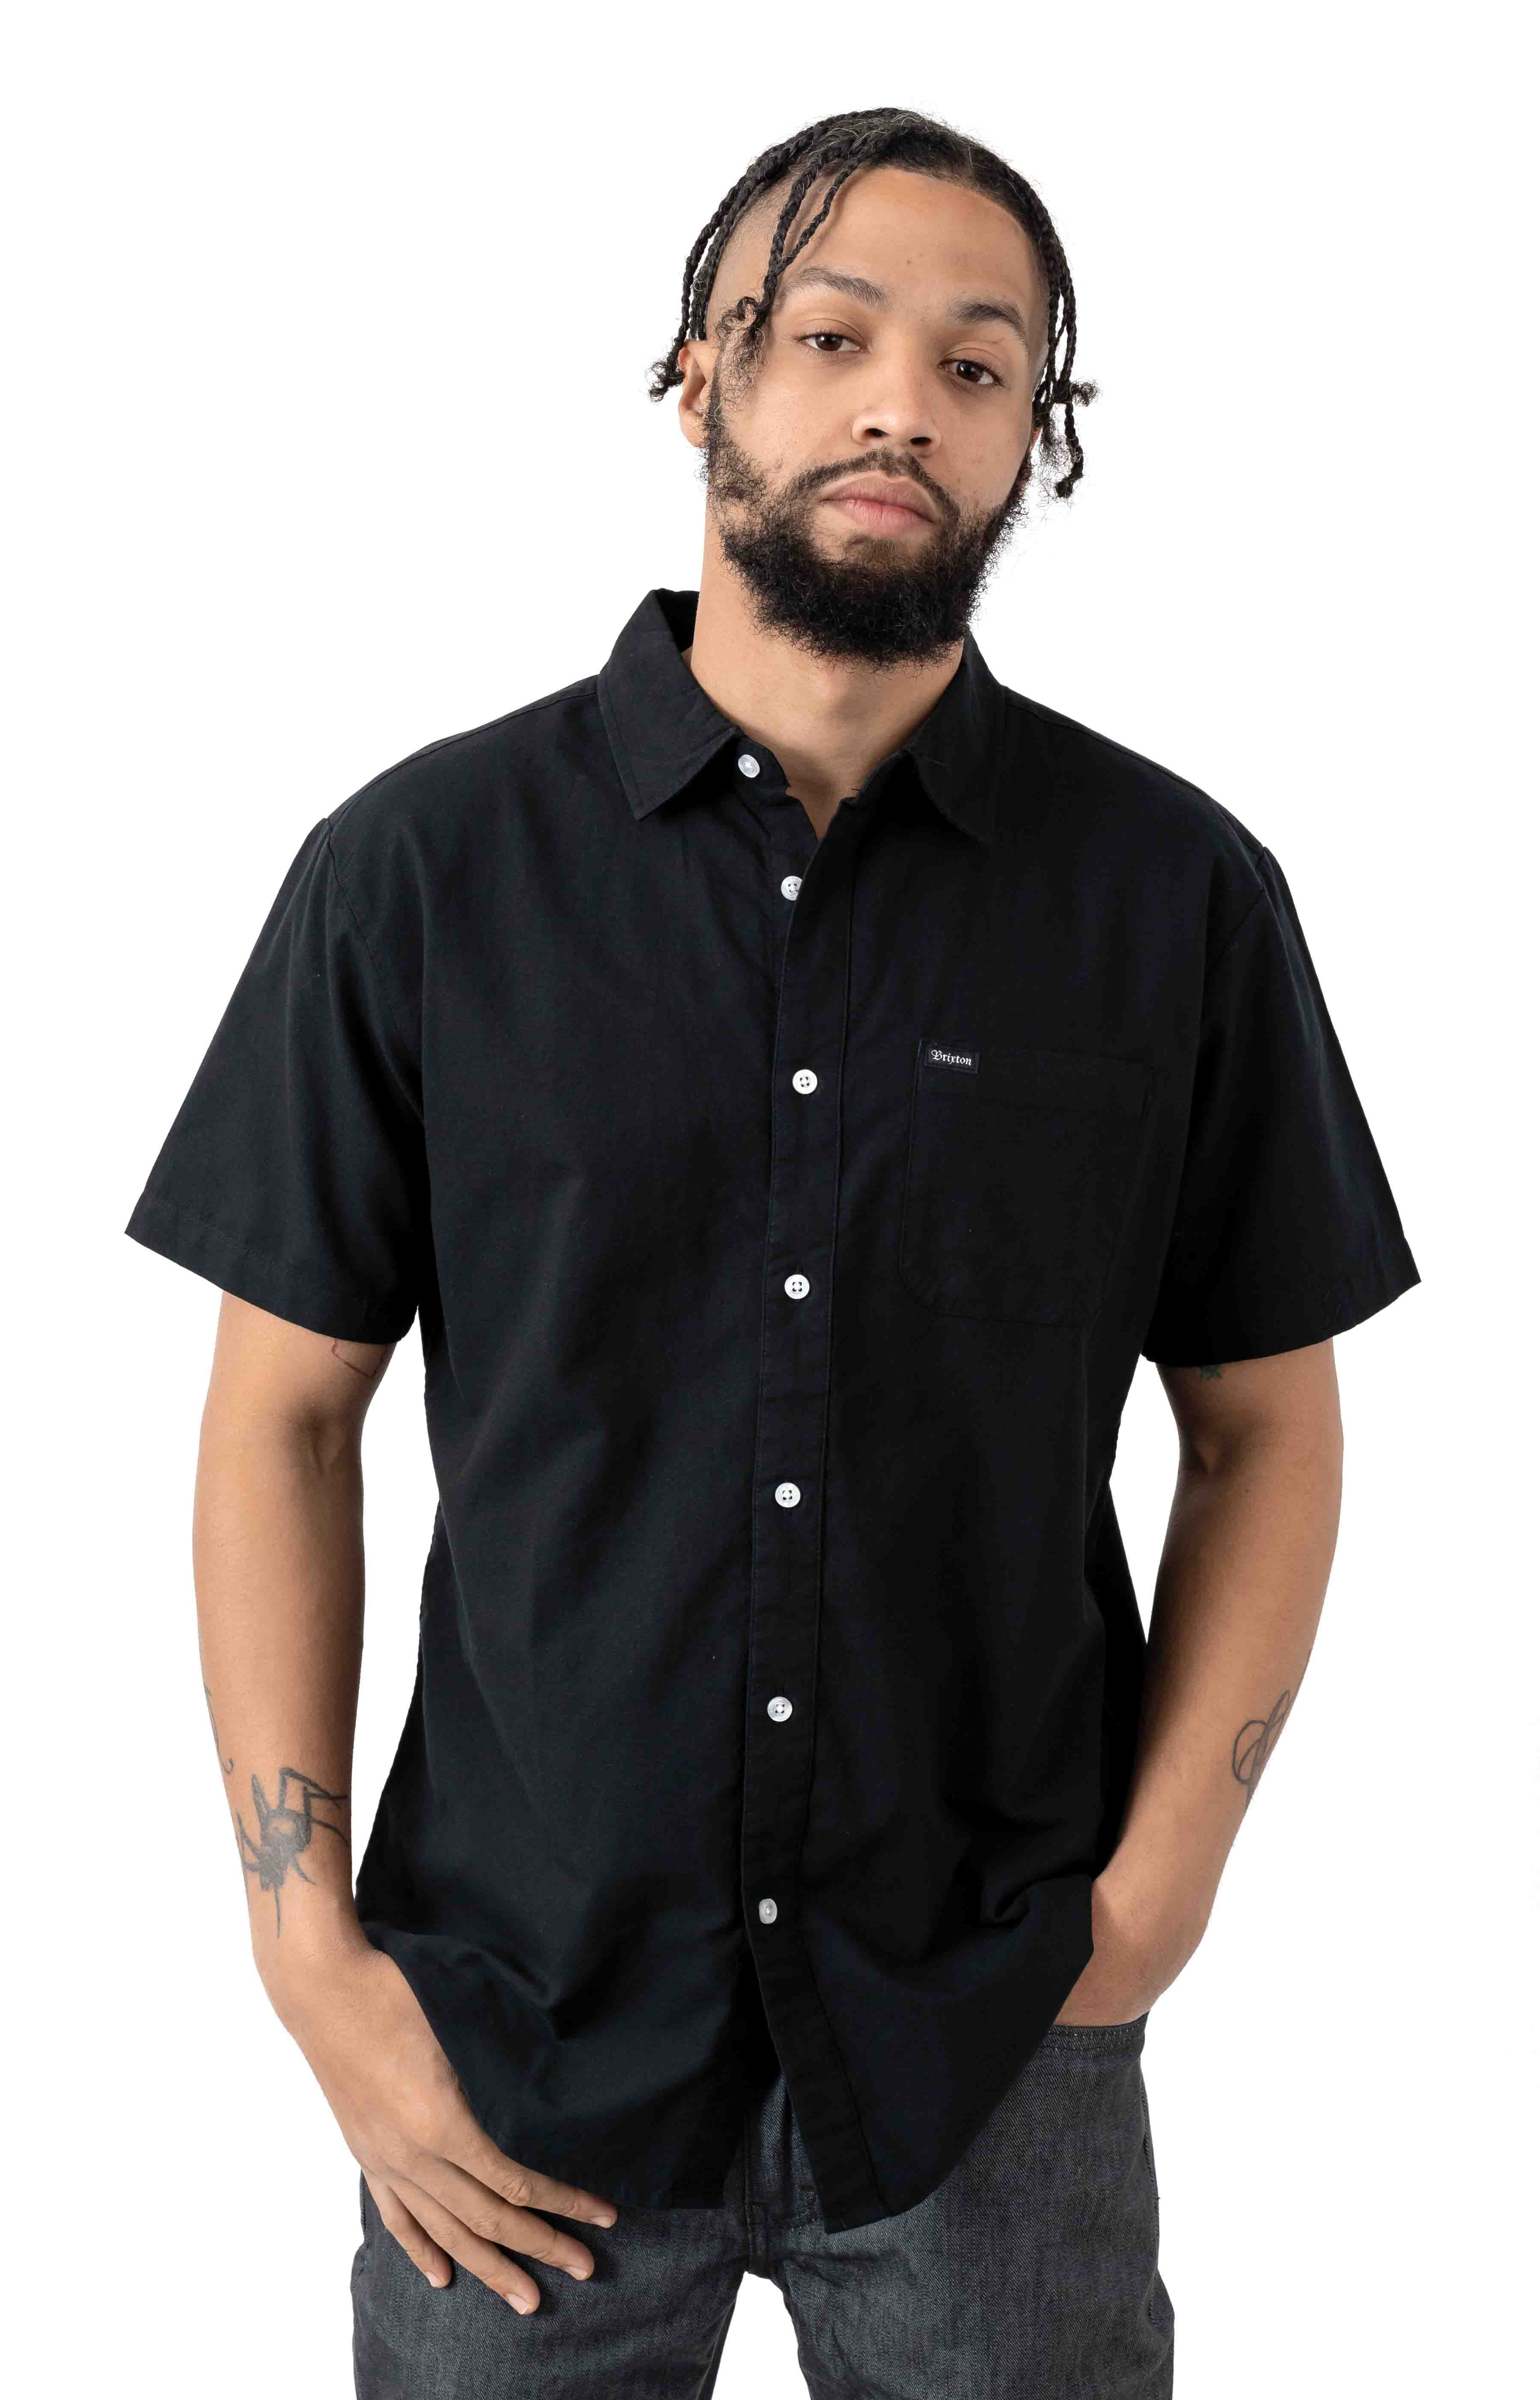 Charter Oxford S/S Button-Up Shirt - Black